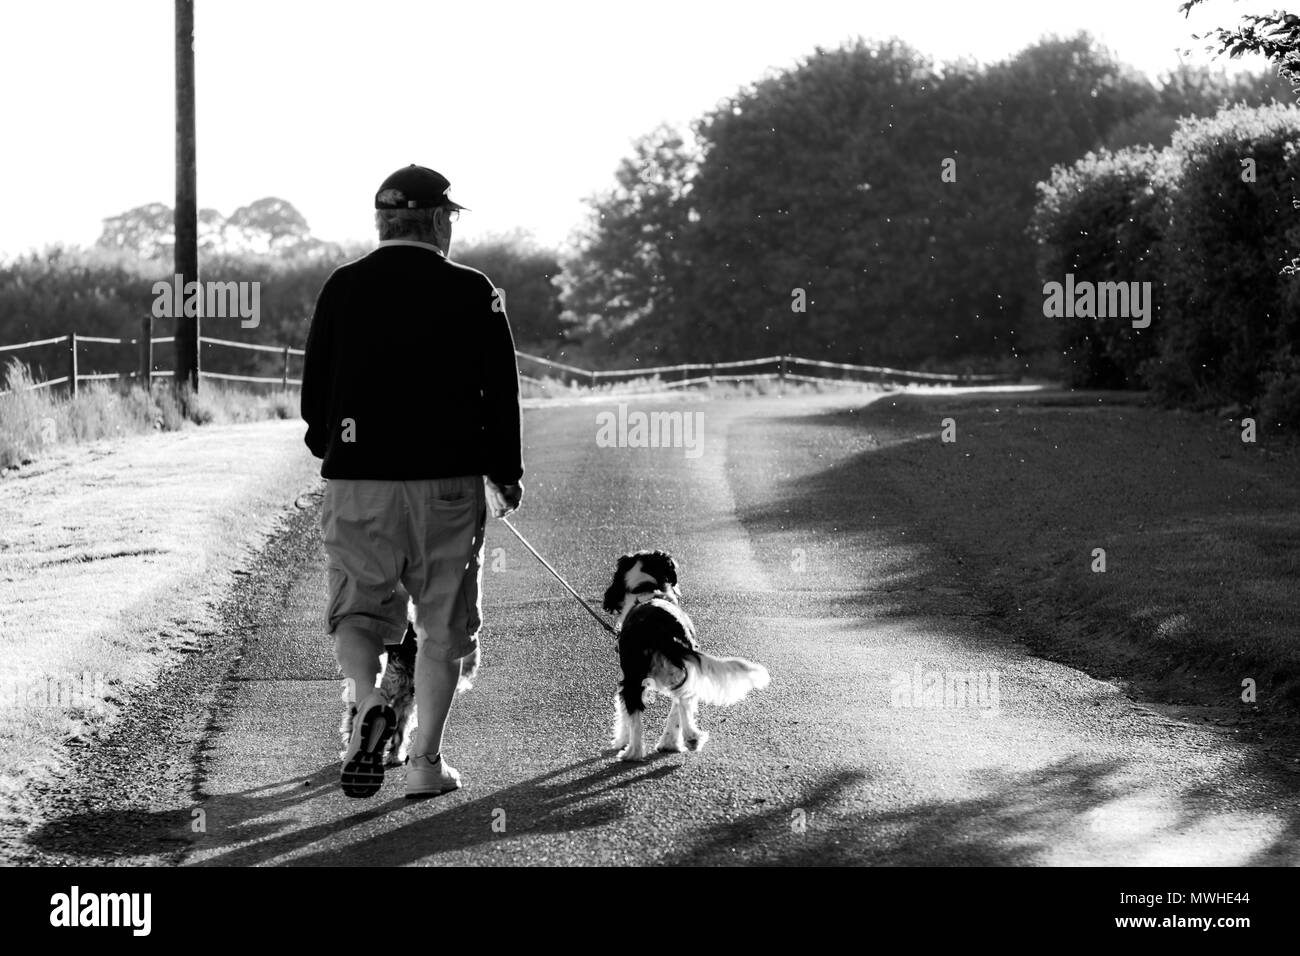 An elderly man walking his dogs in black and white - Stock Image